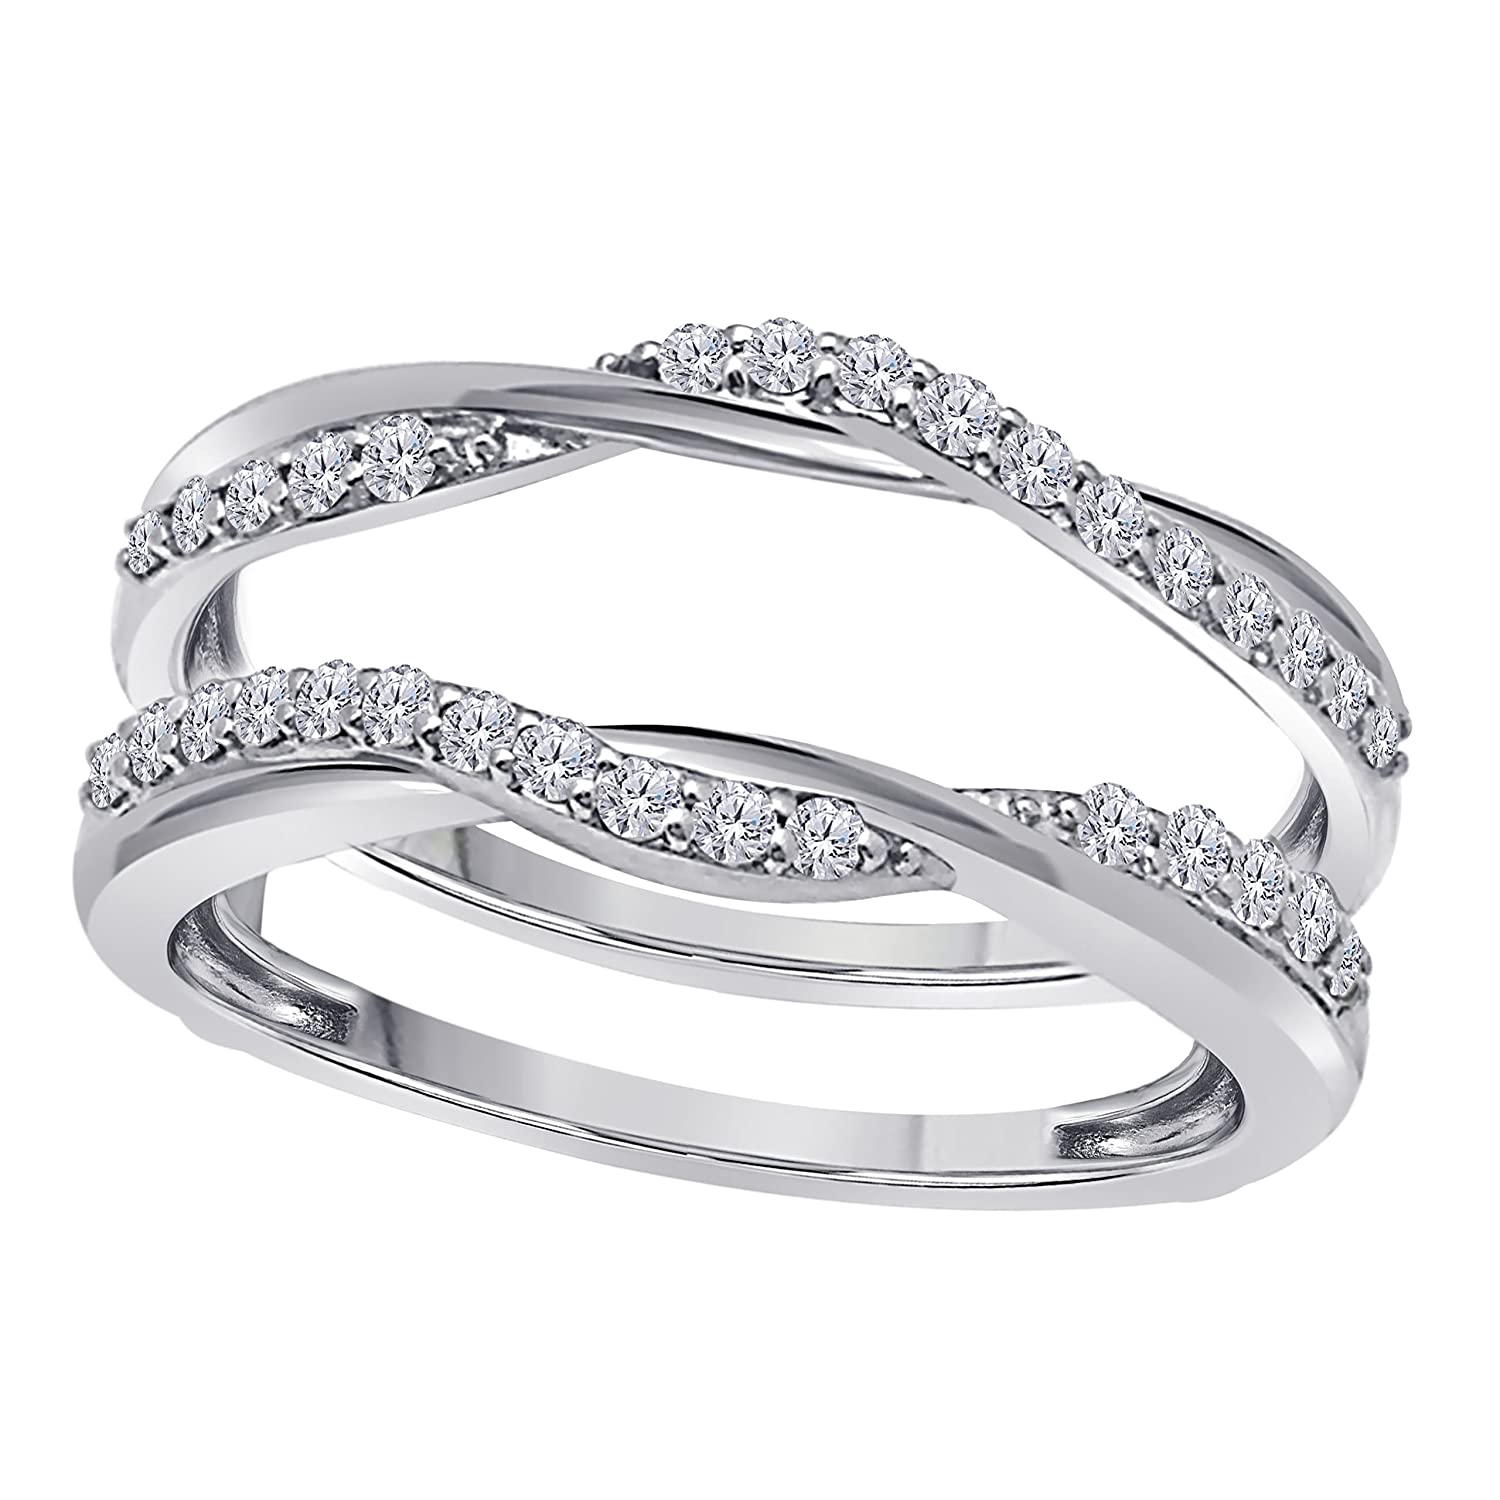 Sterling Silver Plated Delicate Bypass Infinity Style Vintage Wedding Ring Guard Enhancer with Cubic Zirconia (0.50 ct. tw.) Star Retail Fiftyone-01